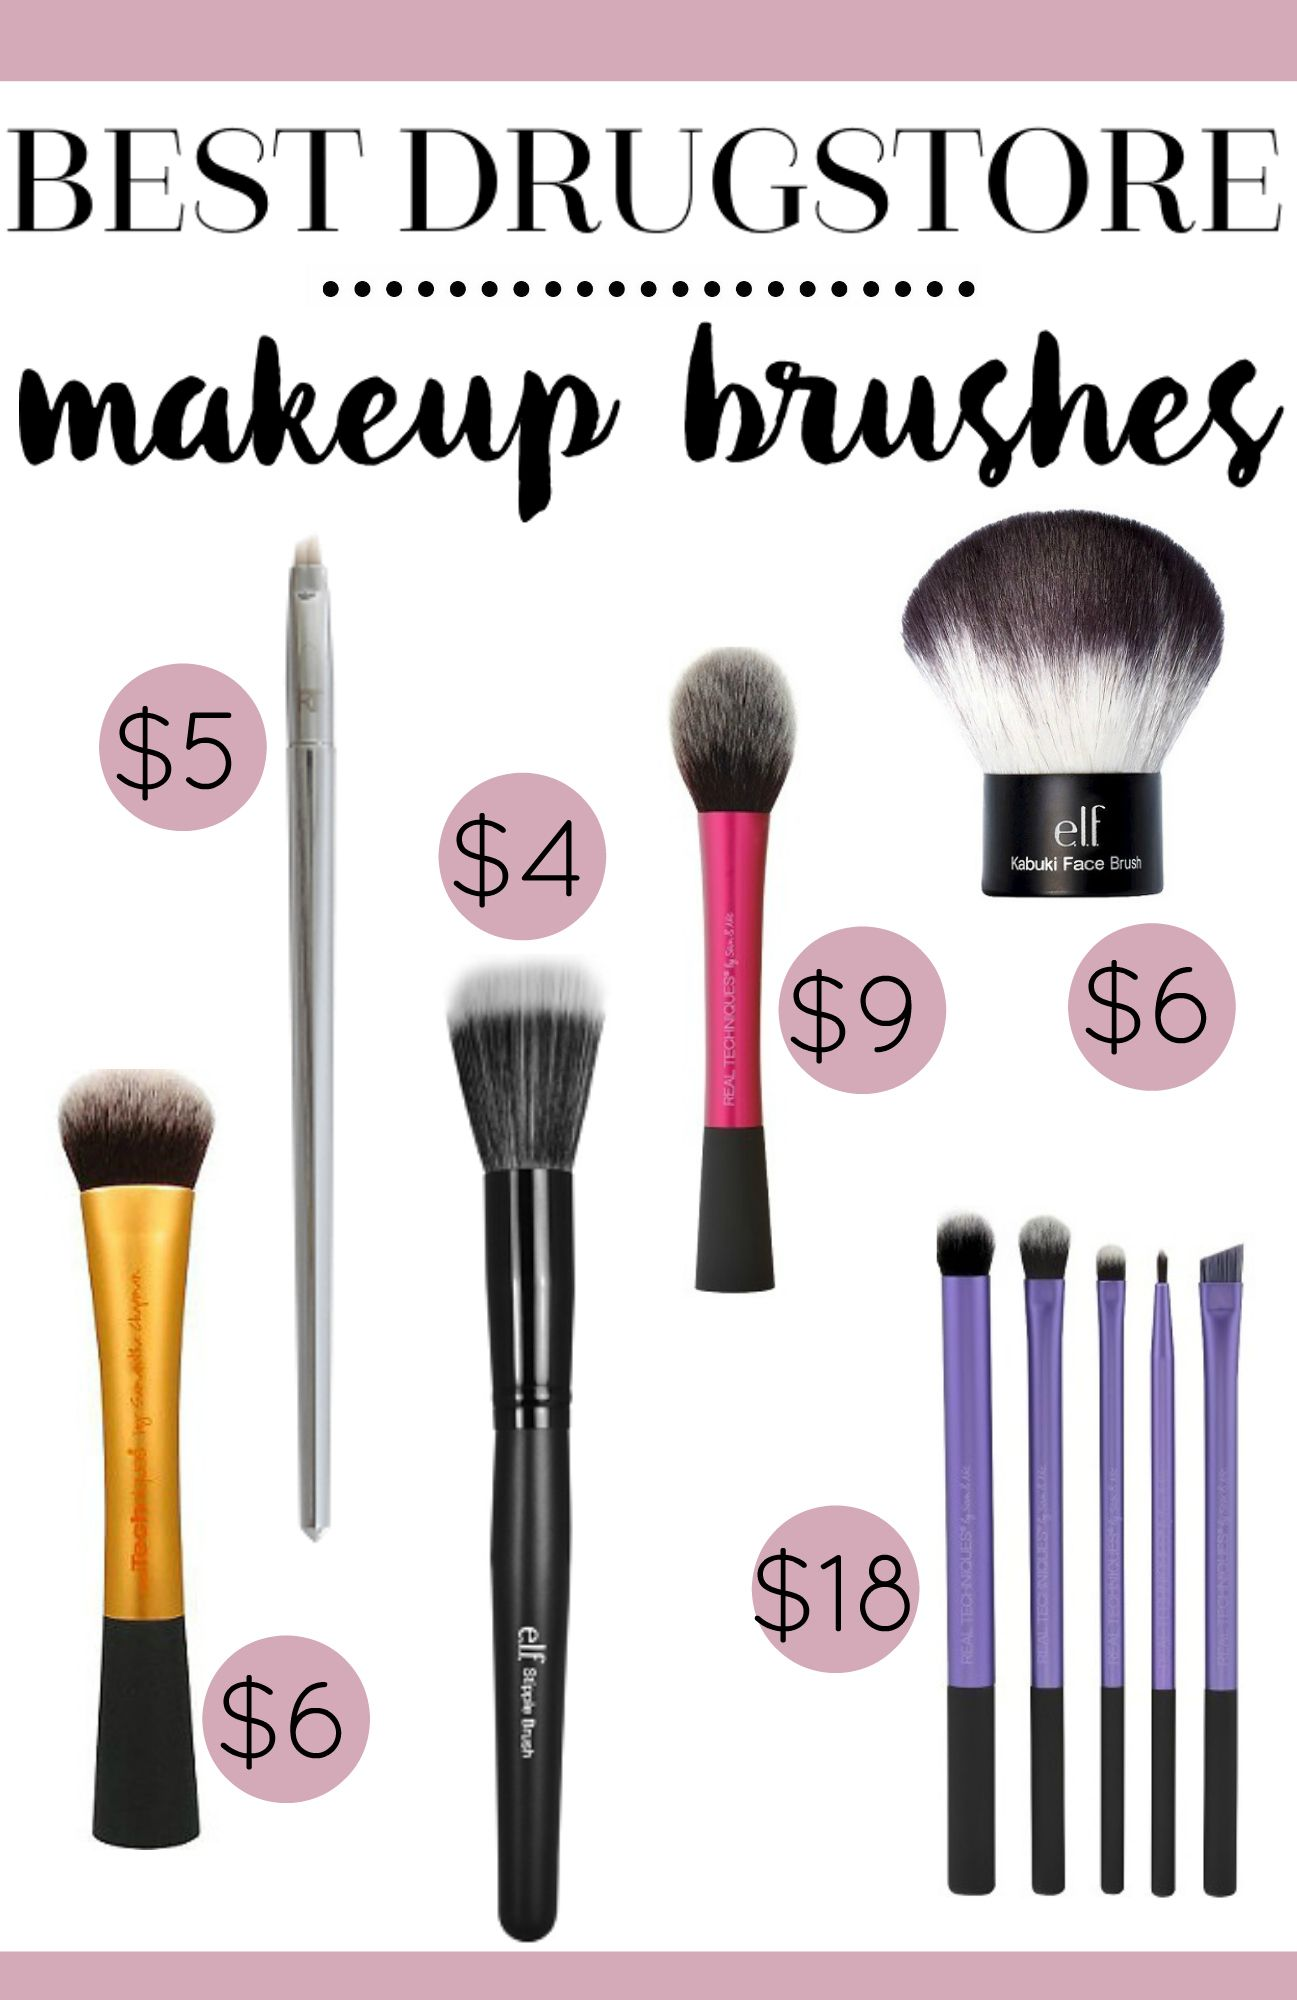 Best Drugstore Makeup Brushes You'll Want To Try